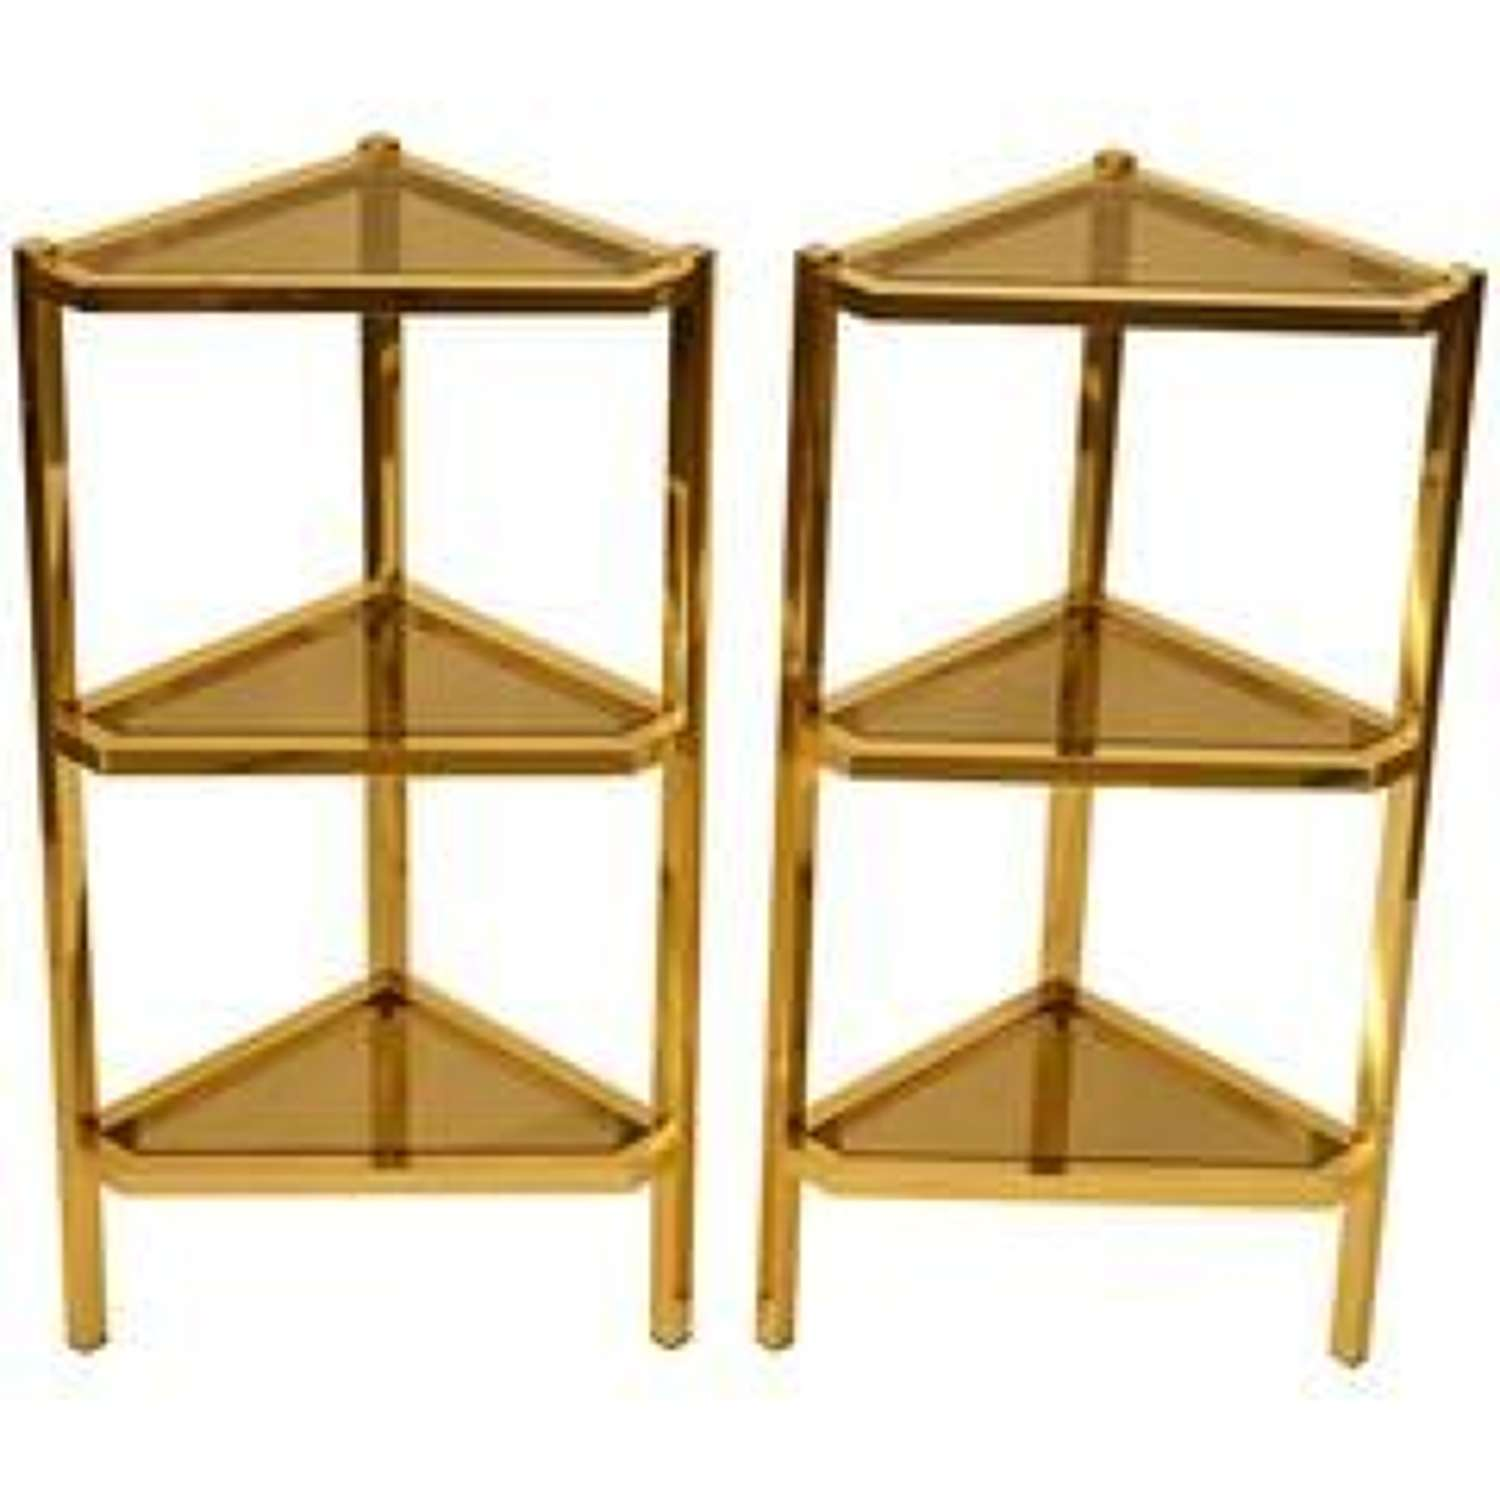 Pair of Triangular Brass and Glass 1970's Shelving Units